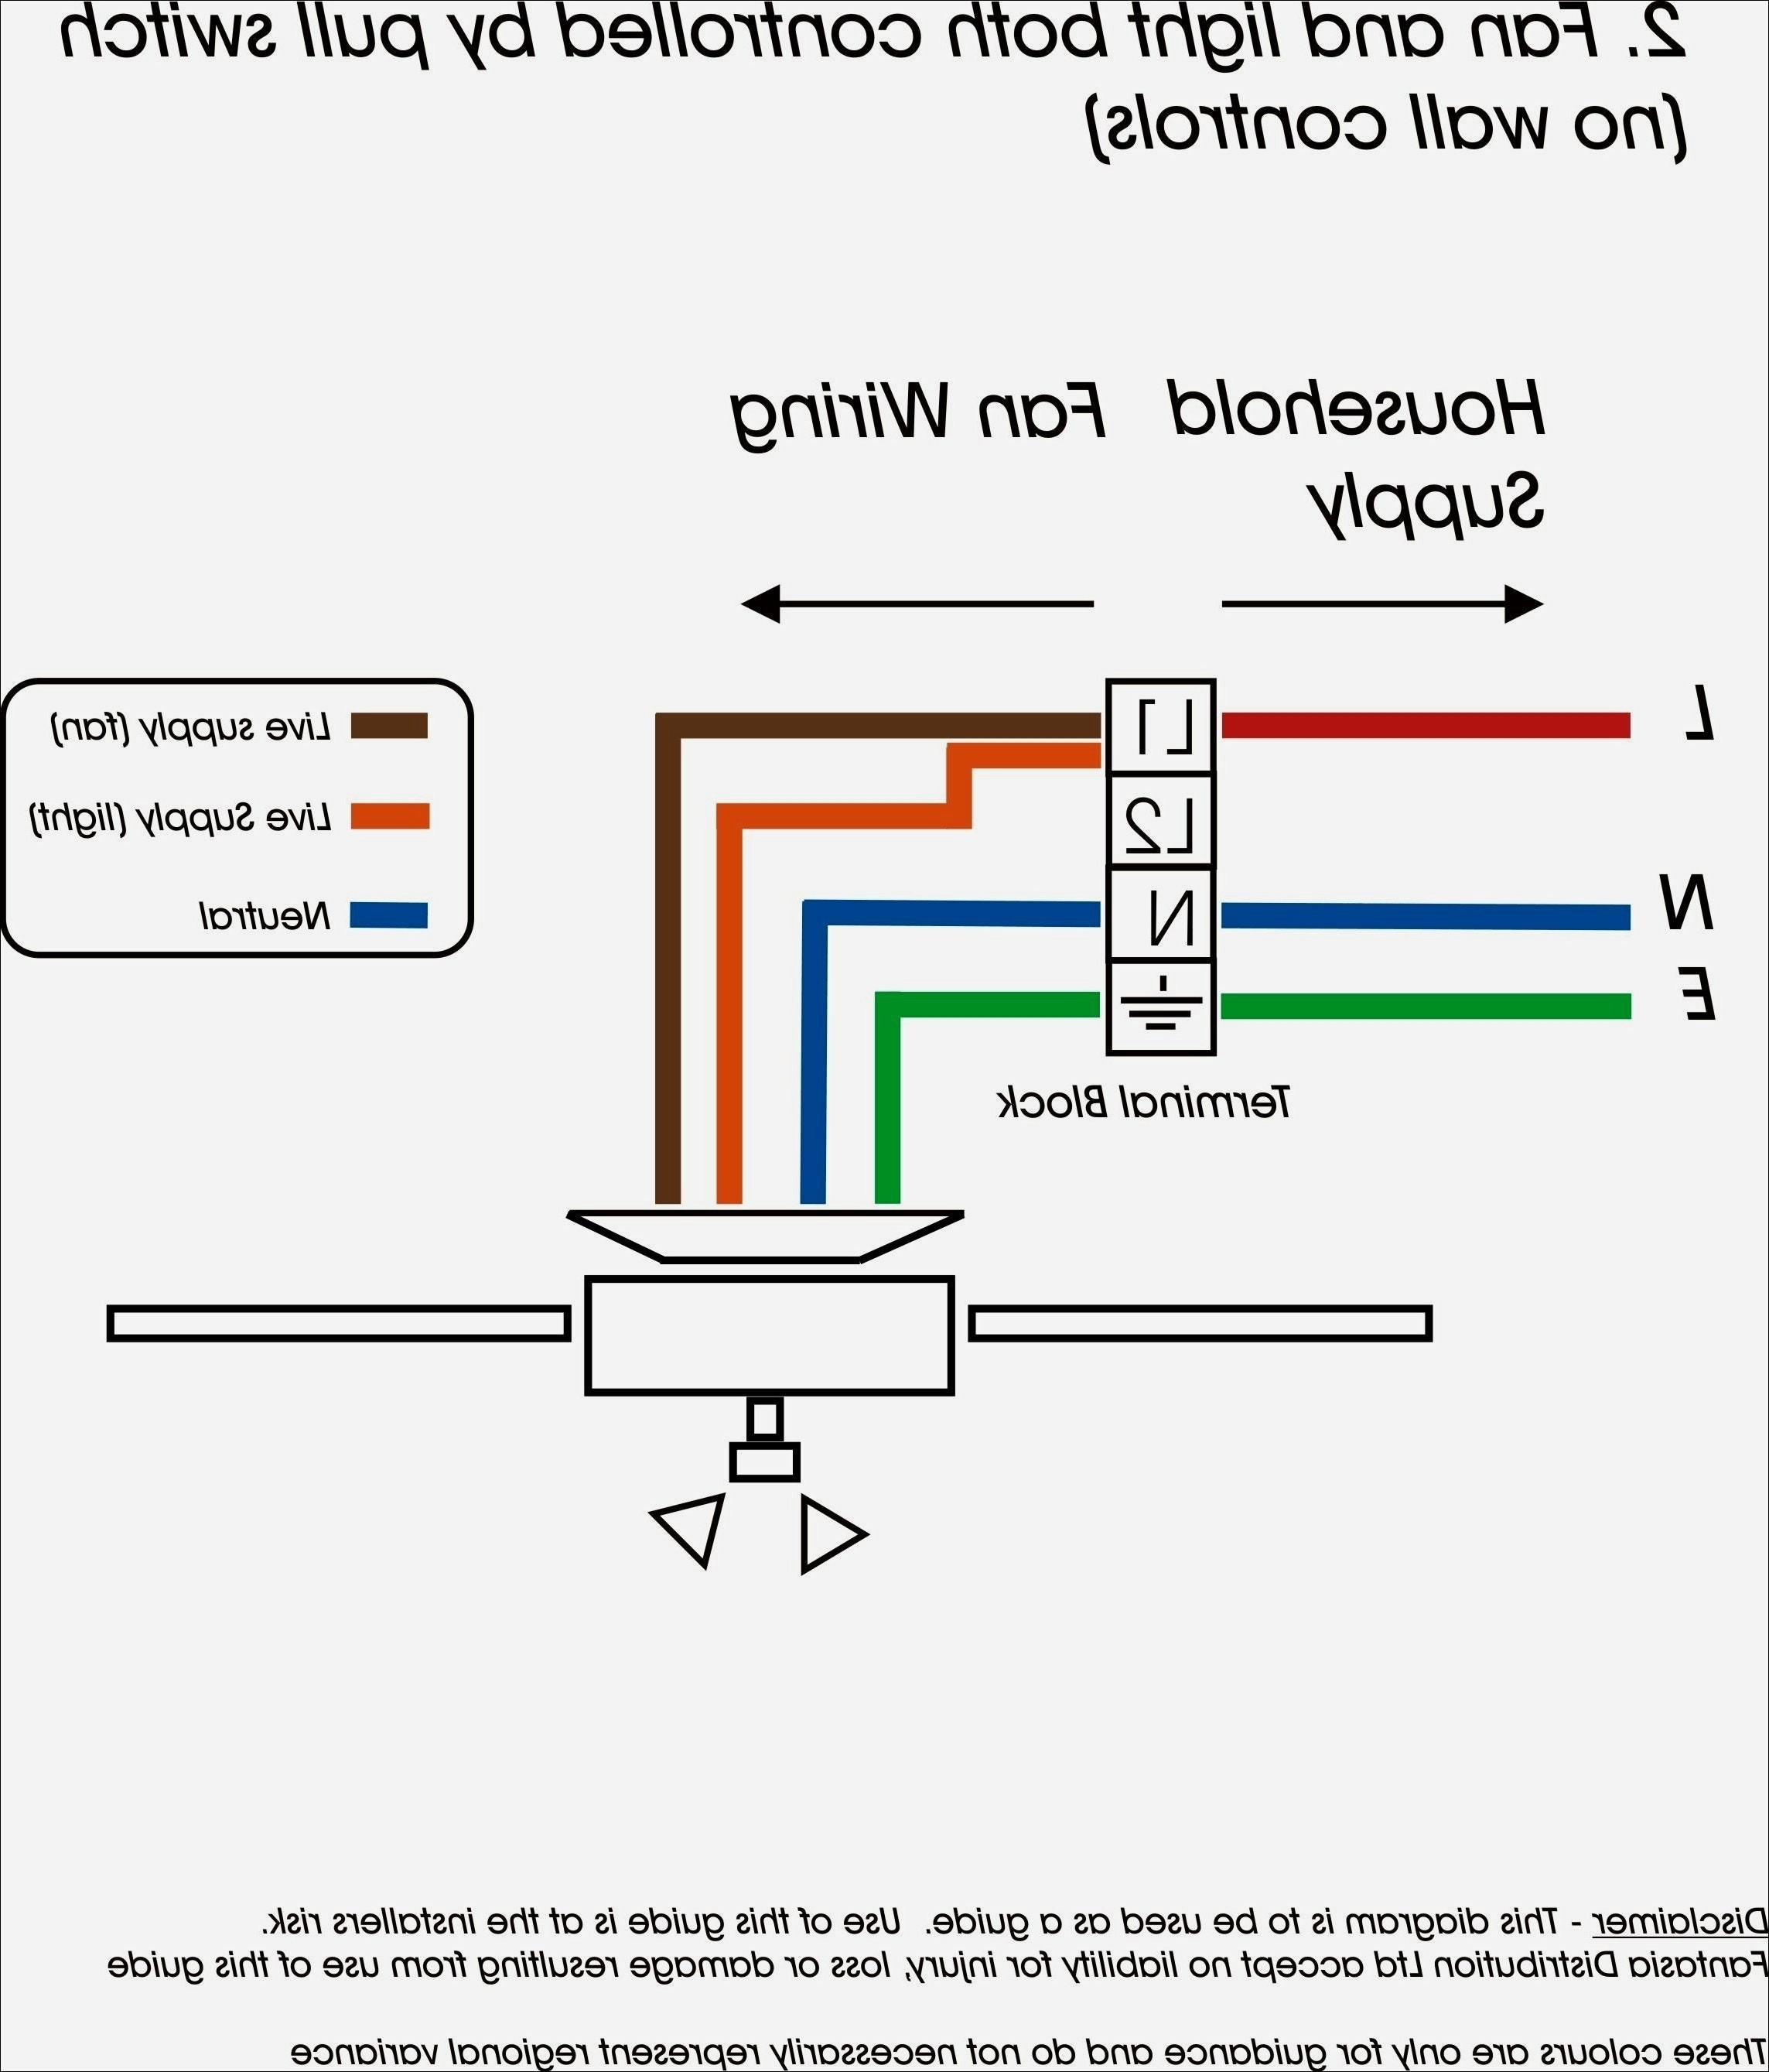 lutron diva dimmer wiring diagram Collection-Valid Wiring Diagram for Dimmer Switch Australia 1-f